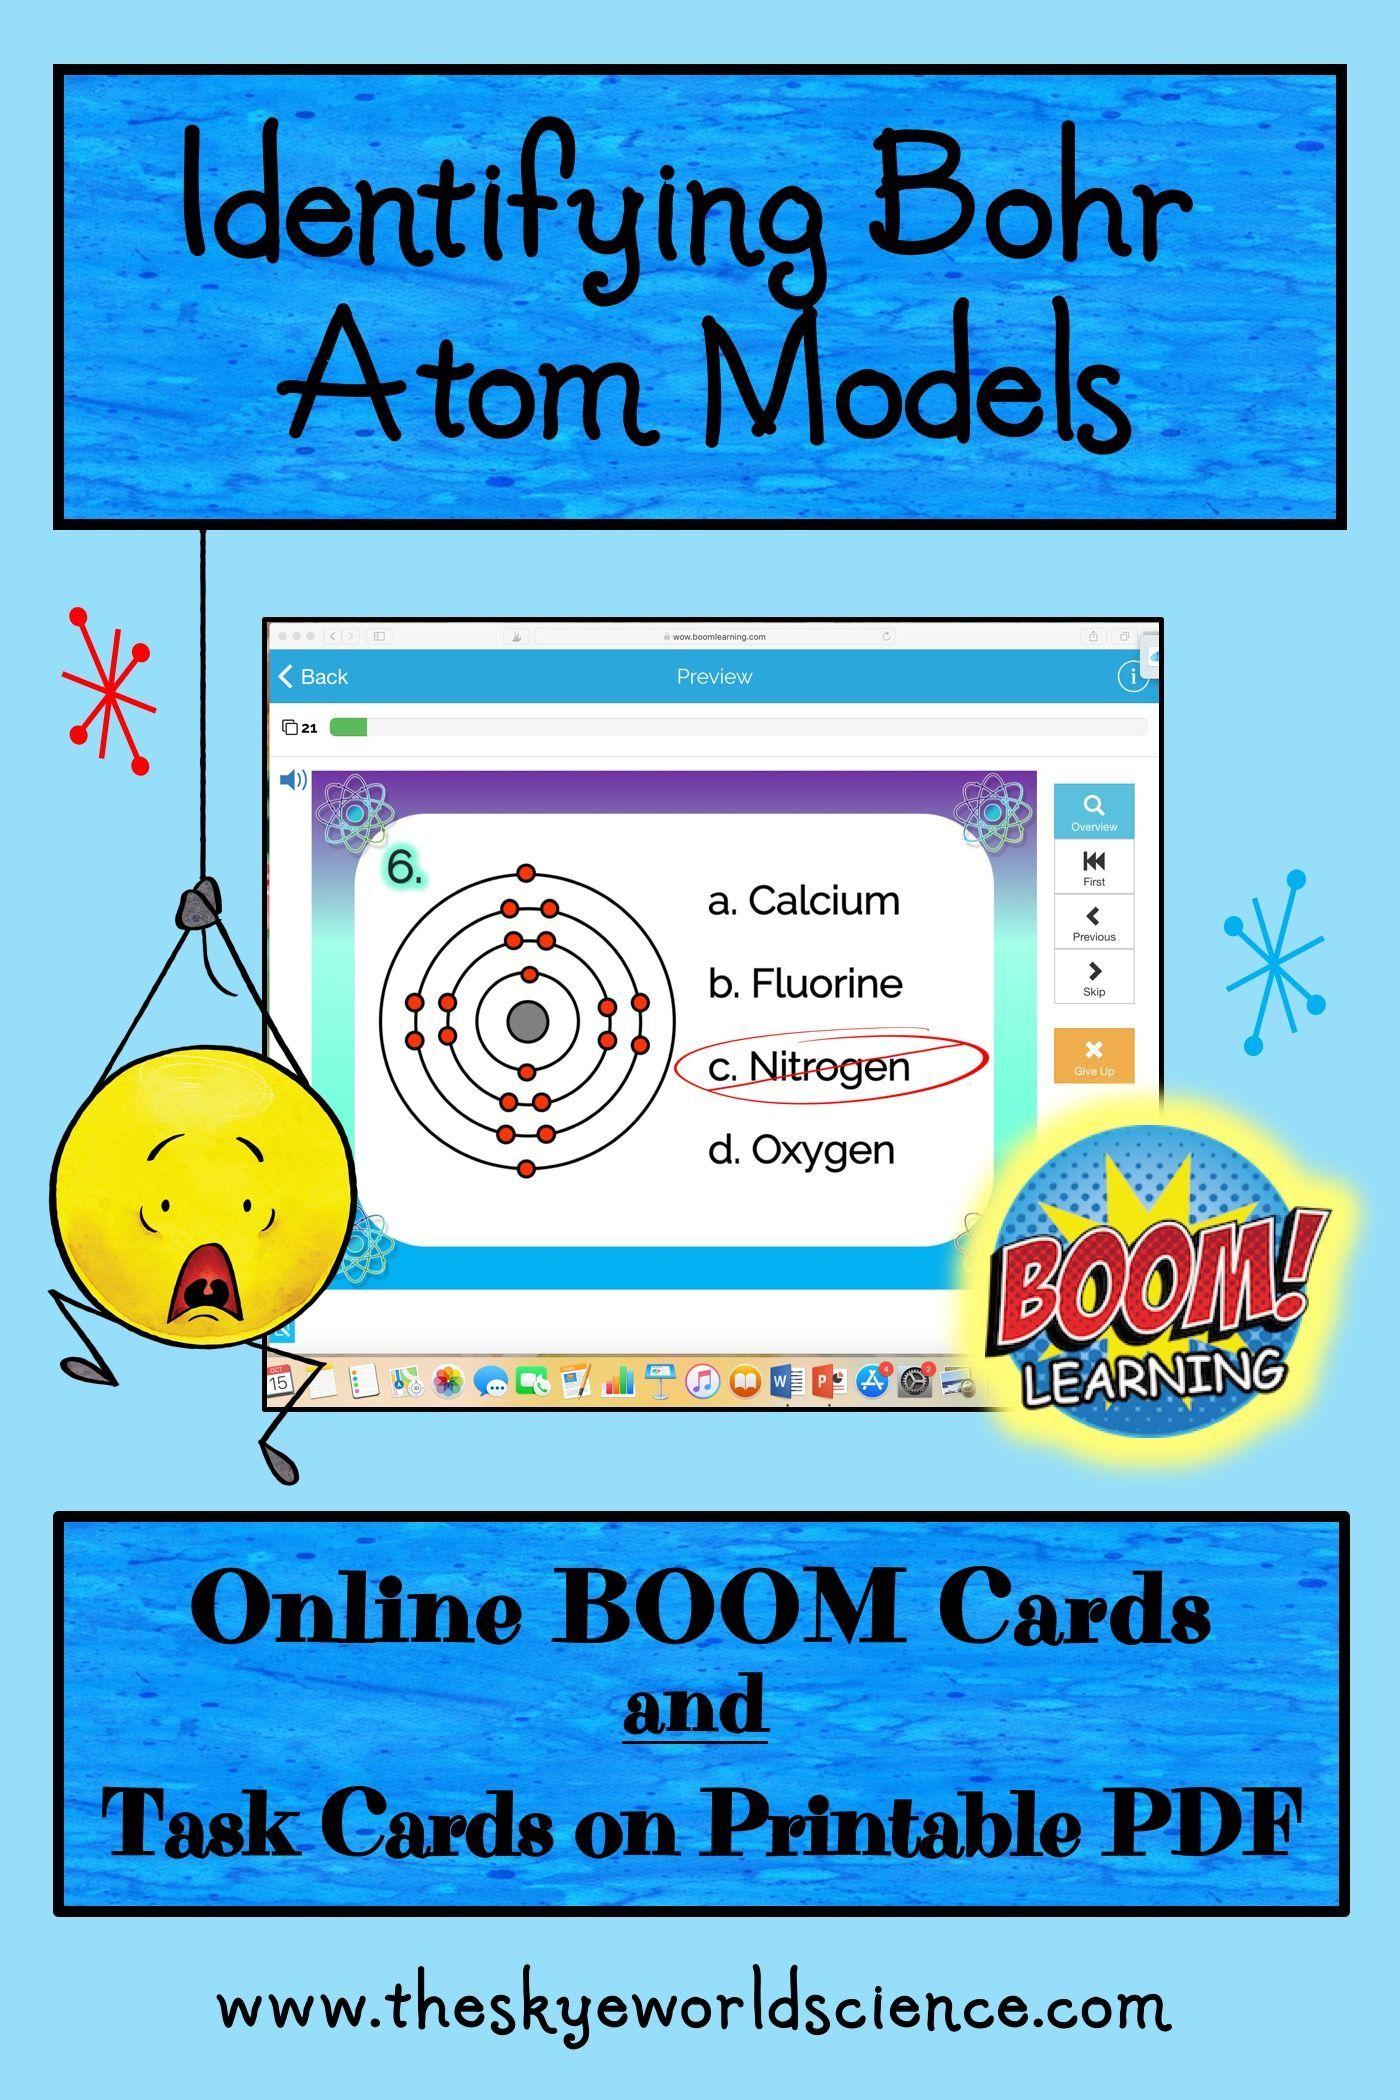 Identifying Bohr Atom Models Task Cards